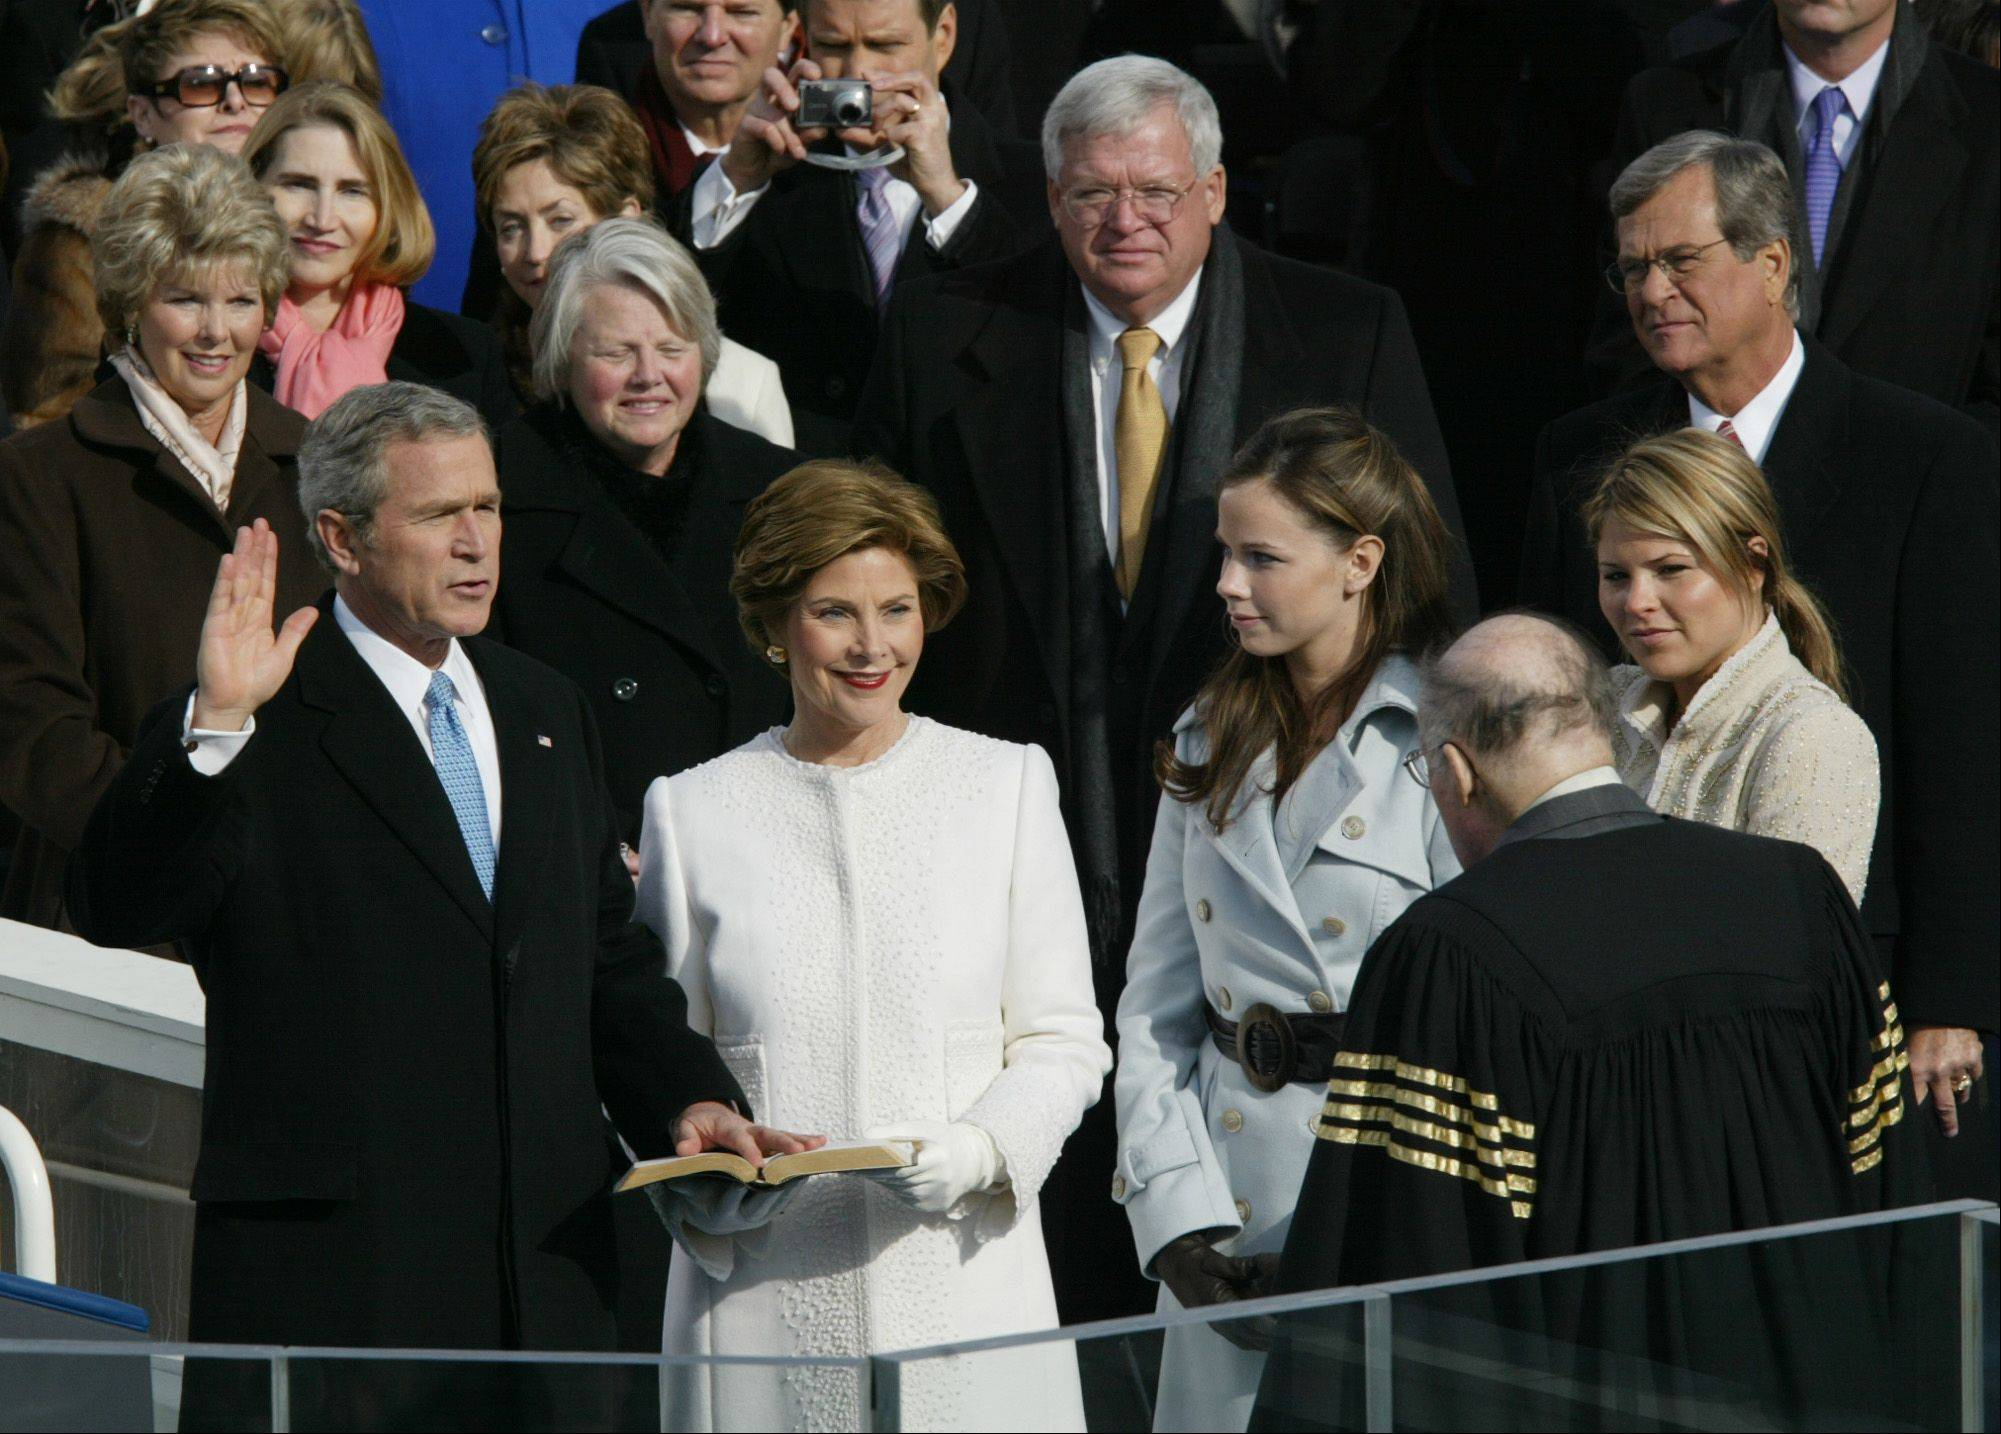 President Bush takes the oath of office from Chief Justice William Rehnquist, right, with first lady Laura Bush, and his daughters Barbara and Jenna at his side at the US Capitol in Washington, Jan. 20, 2005. In background are Speaker of the House Dennis Hastert, left, and Sen. Trent Lott, R-Miss.